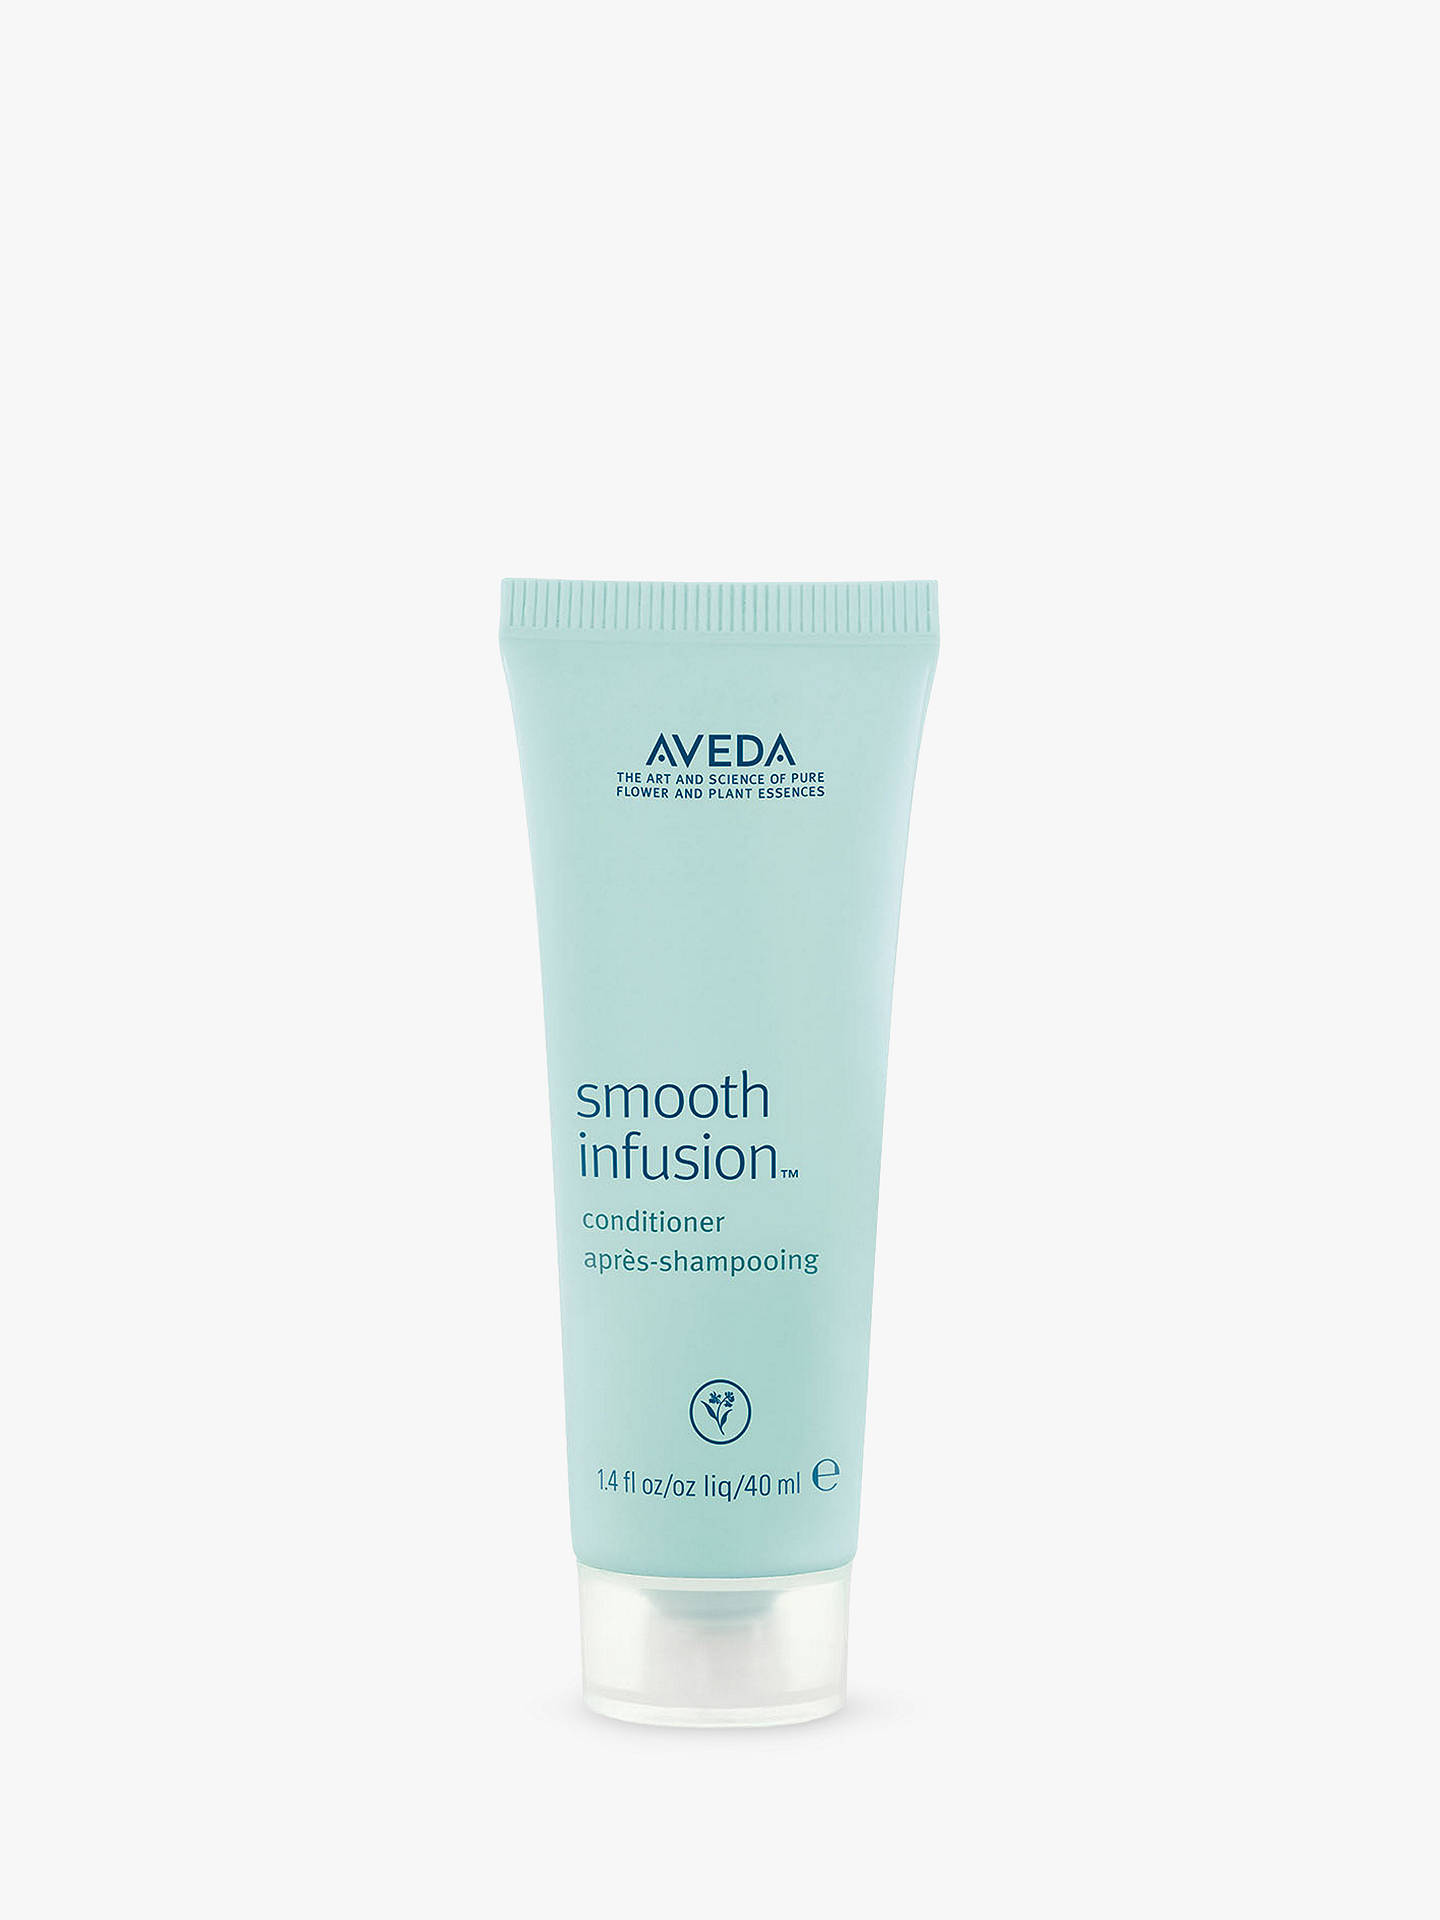 BuyAVEDA Smooth Infusion™ Conditioner, 40ml Online at johnlewis.com